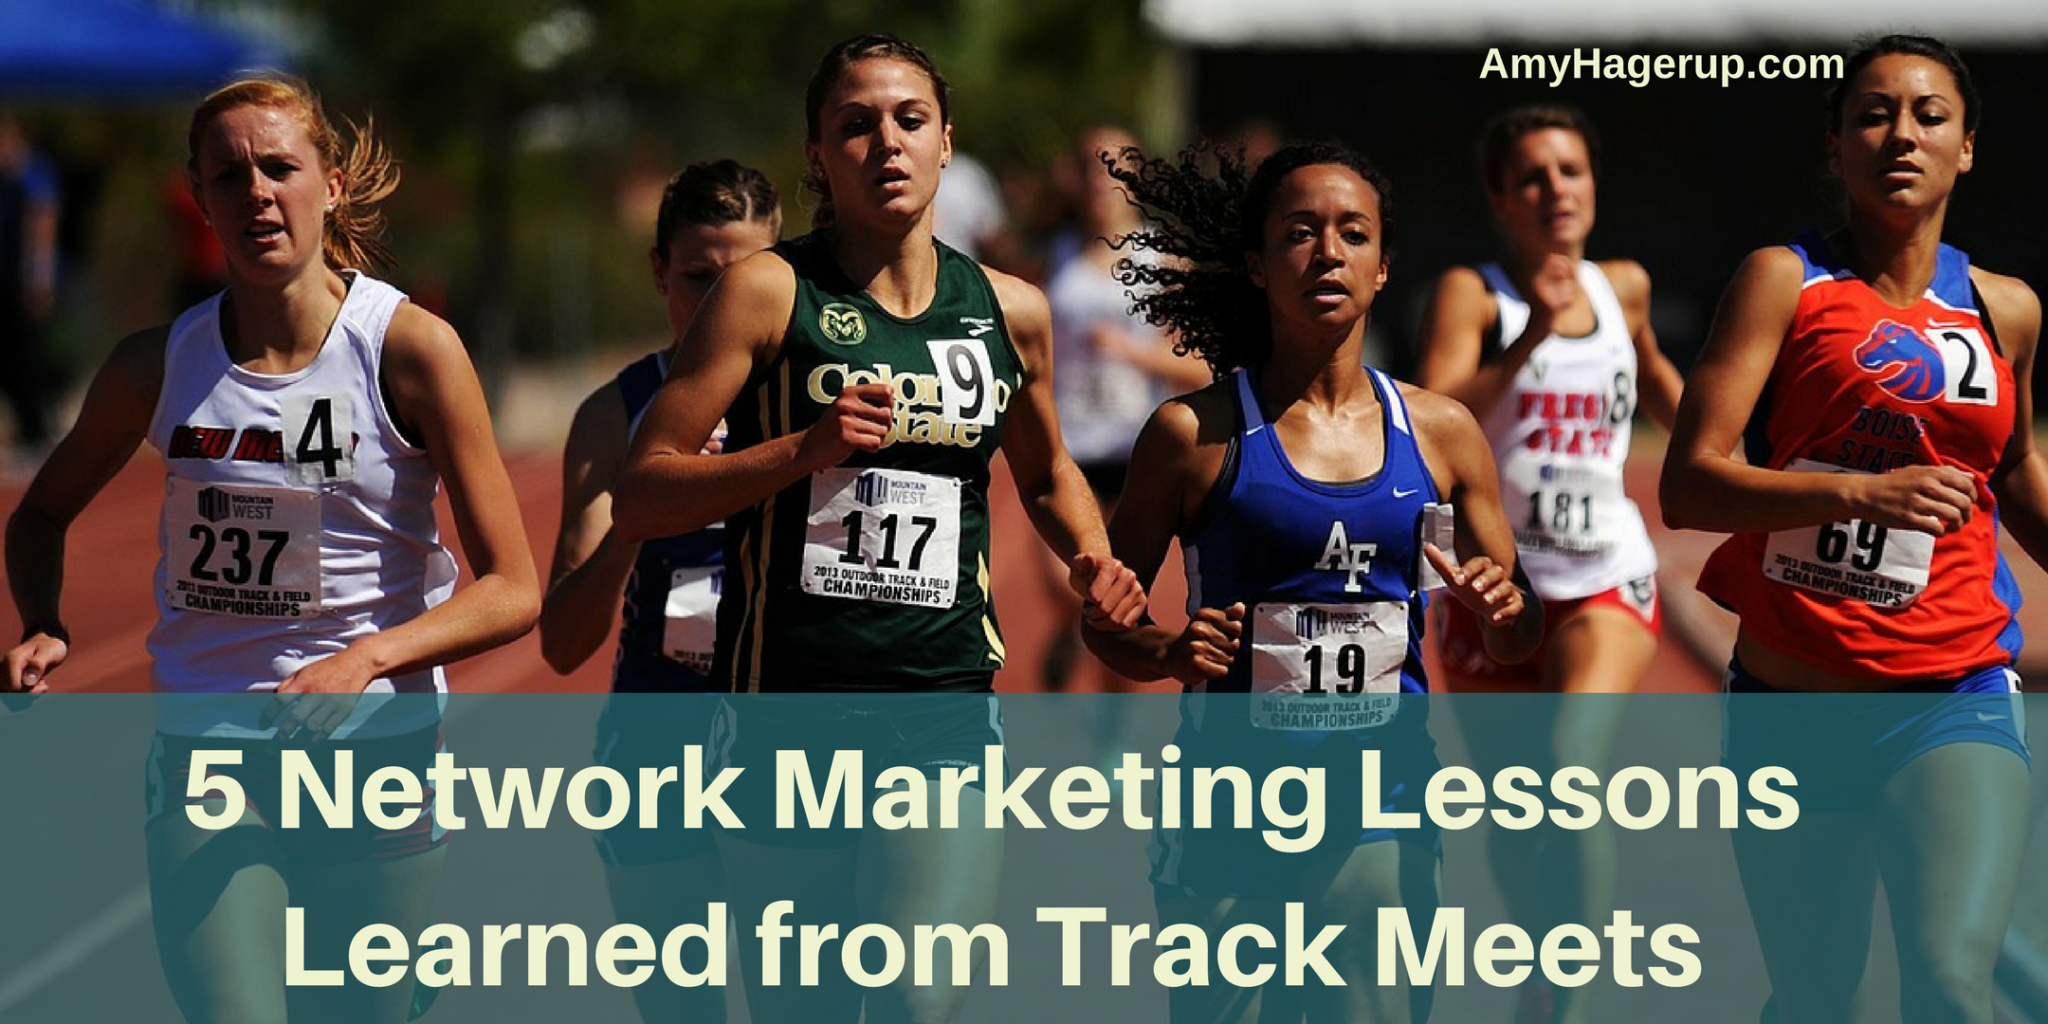 Check out these 5 network marketing lessons learned from track meets.